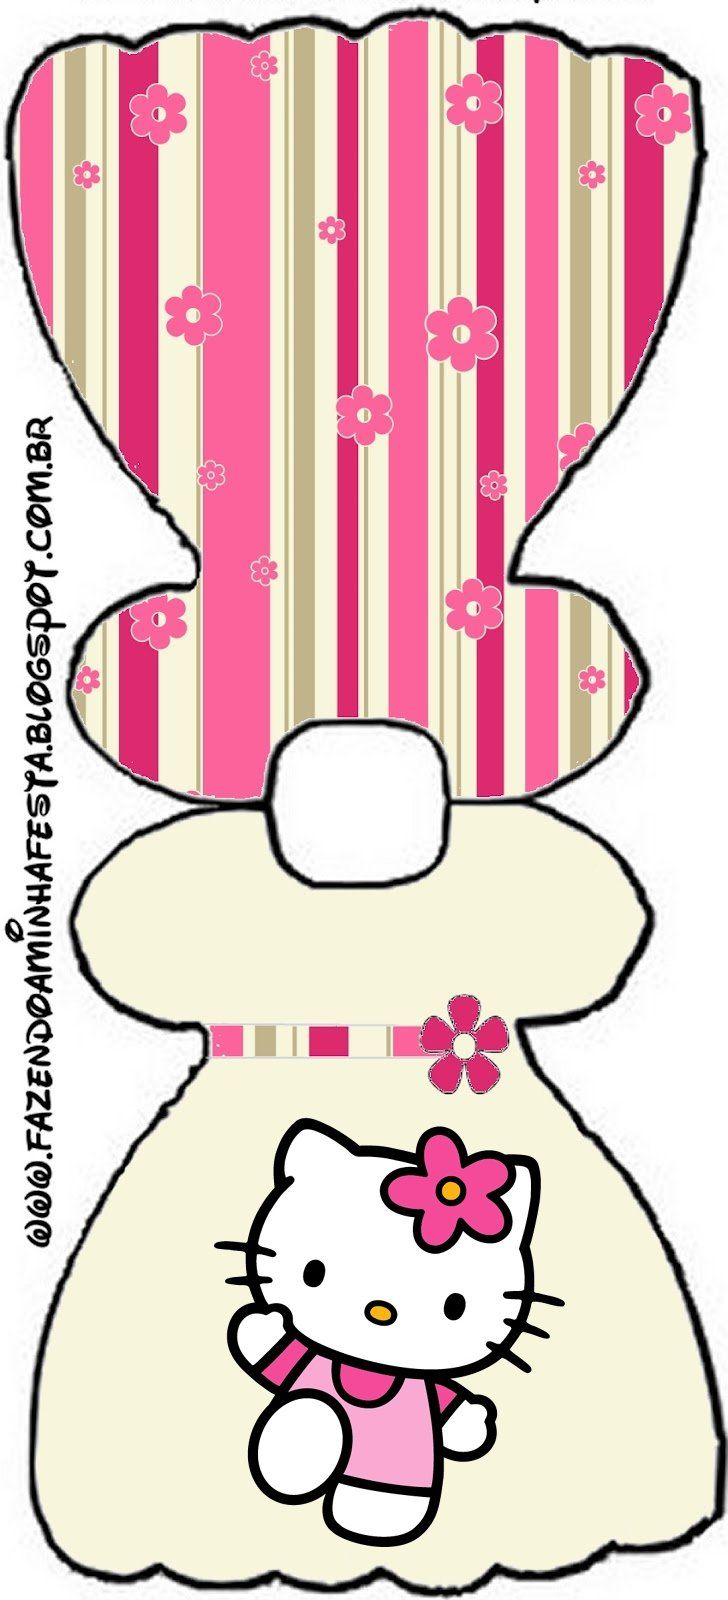 hello-kitty-pink-free-party-printables-057.jpg (728×1600)